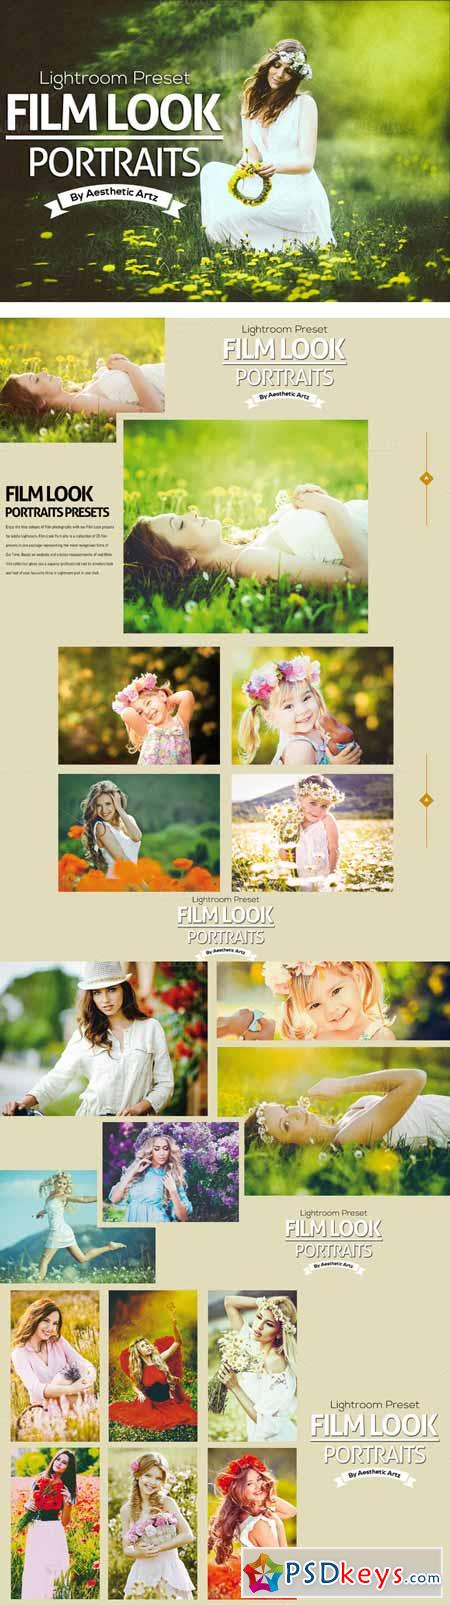 FILM LOOK Portraits Lightroom Preset 325744